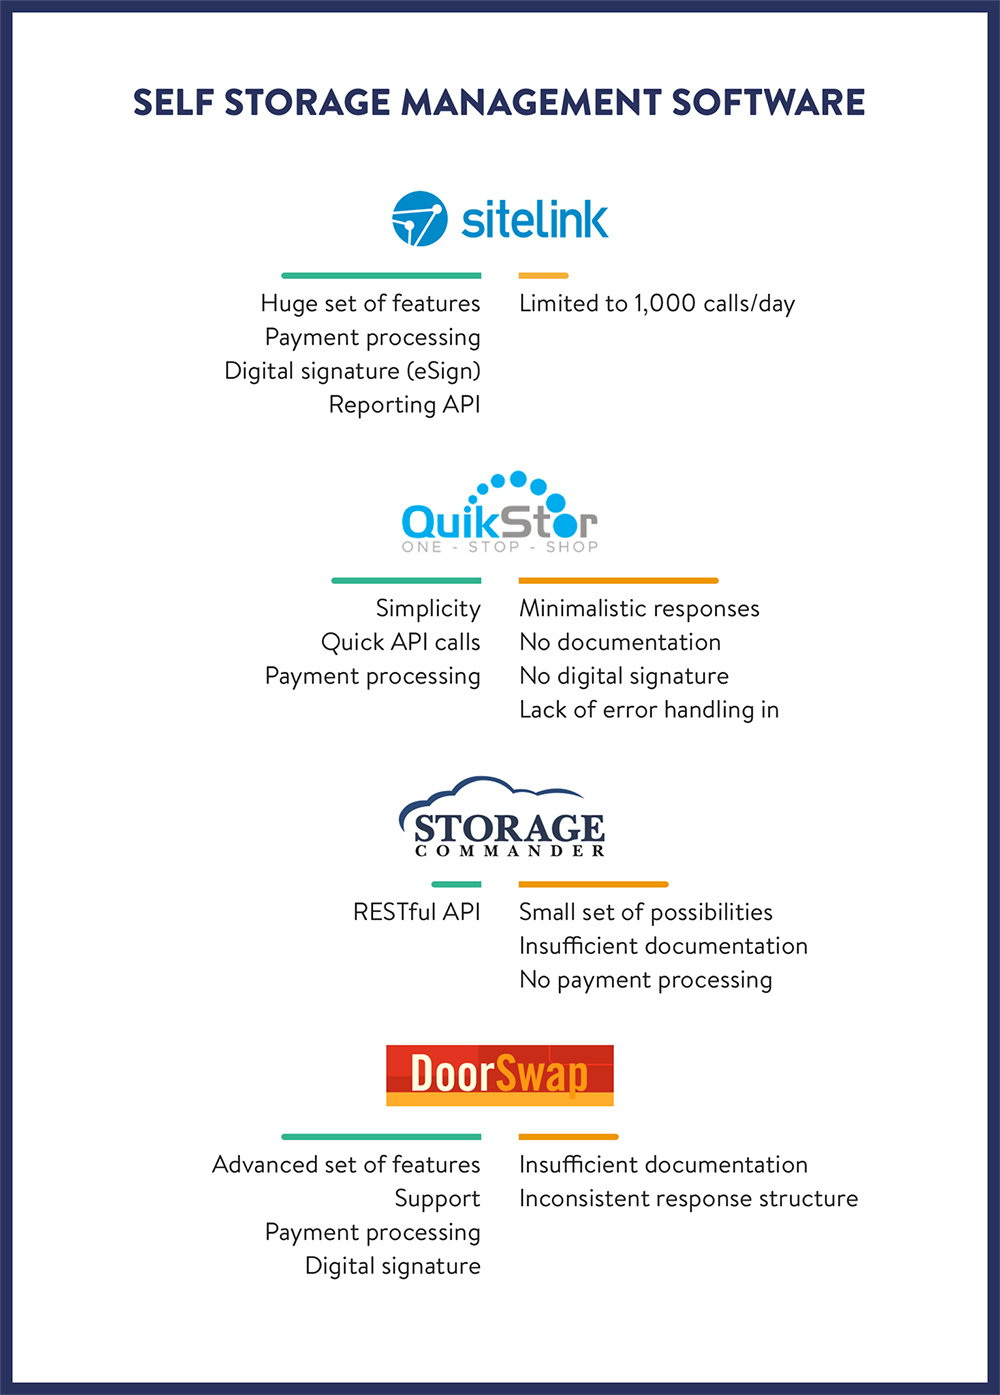 Self storage software comparison